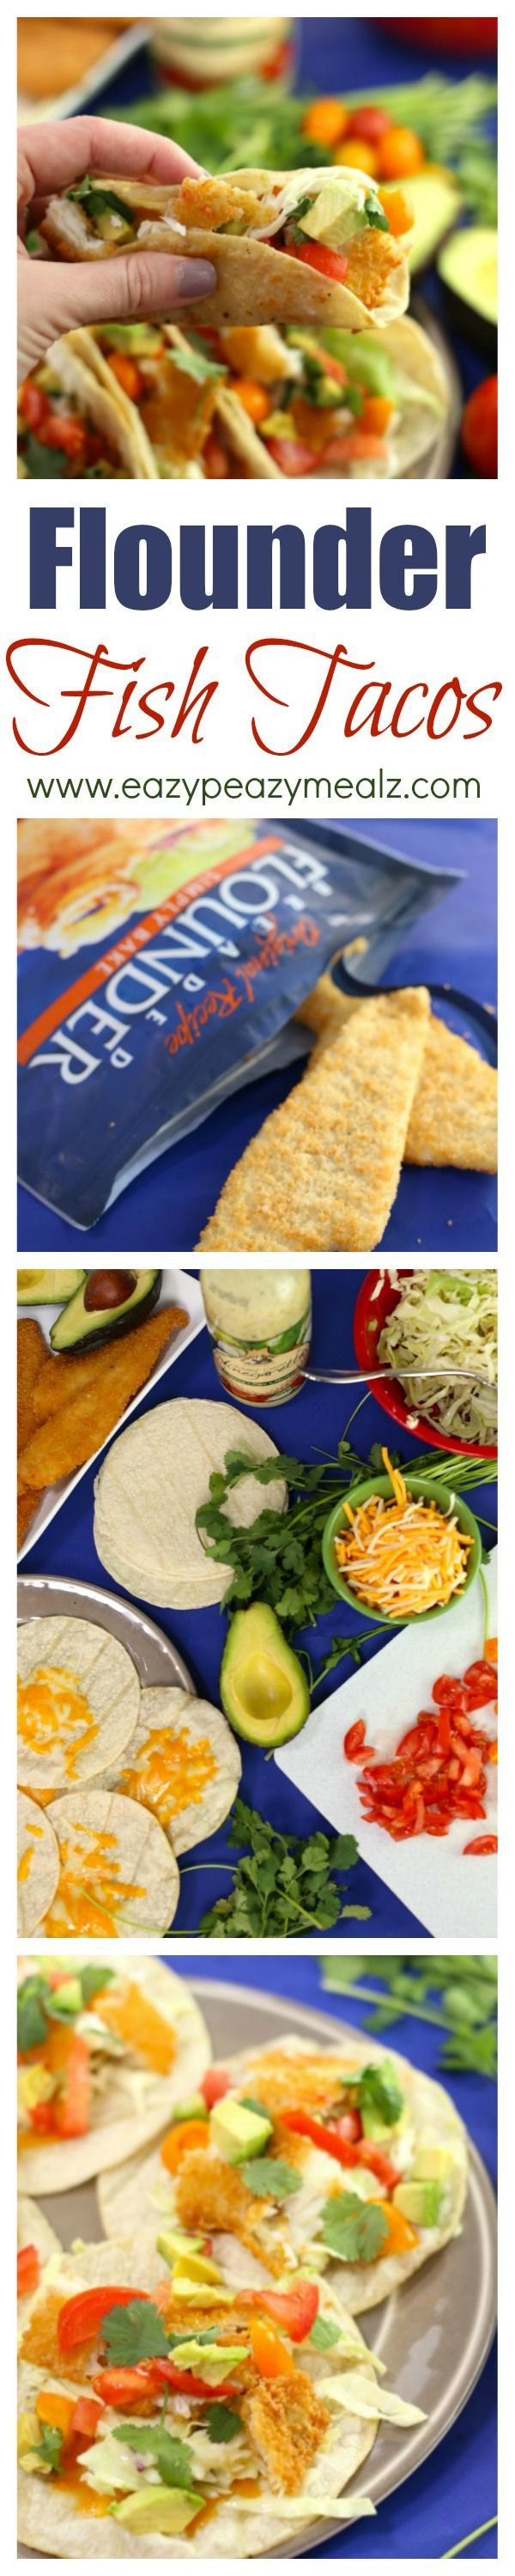 A quick and easy fish taco using breaded flounder. This comes together in 20 minutes! And is delicious #ad #SamsClubSeafood - Eazy Peazy Mealz (Cheap Easy Meal Gluten Free)